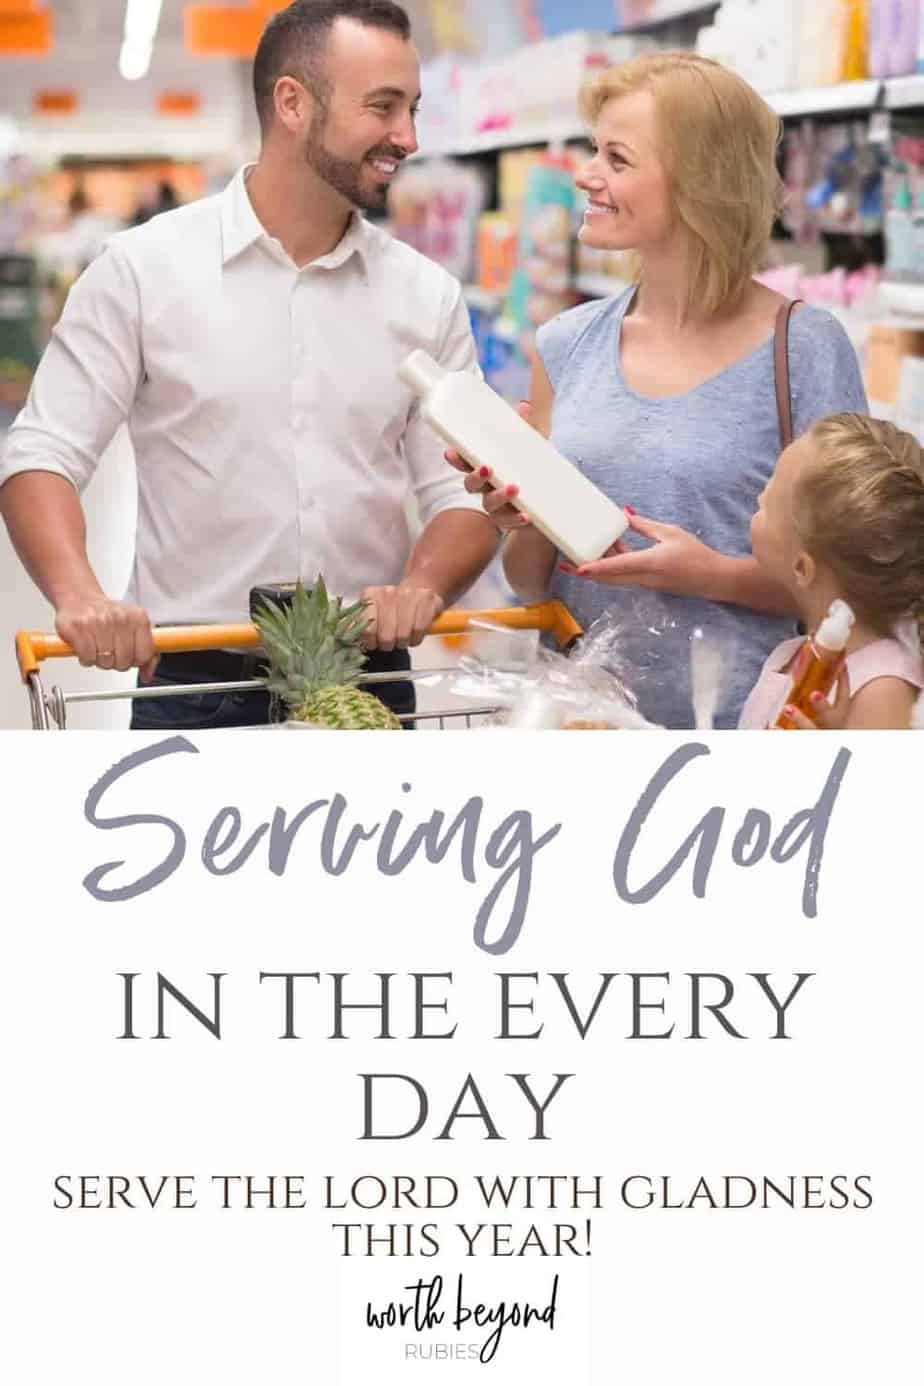 Family with kid picking cleaning products in supermarket - text overlay that says Serving God in the Every Day - Serve the Lord With Gladness This Year